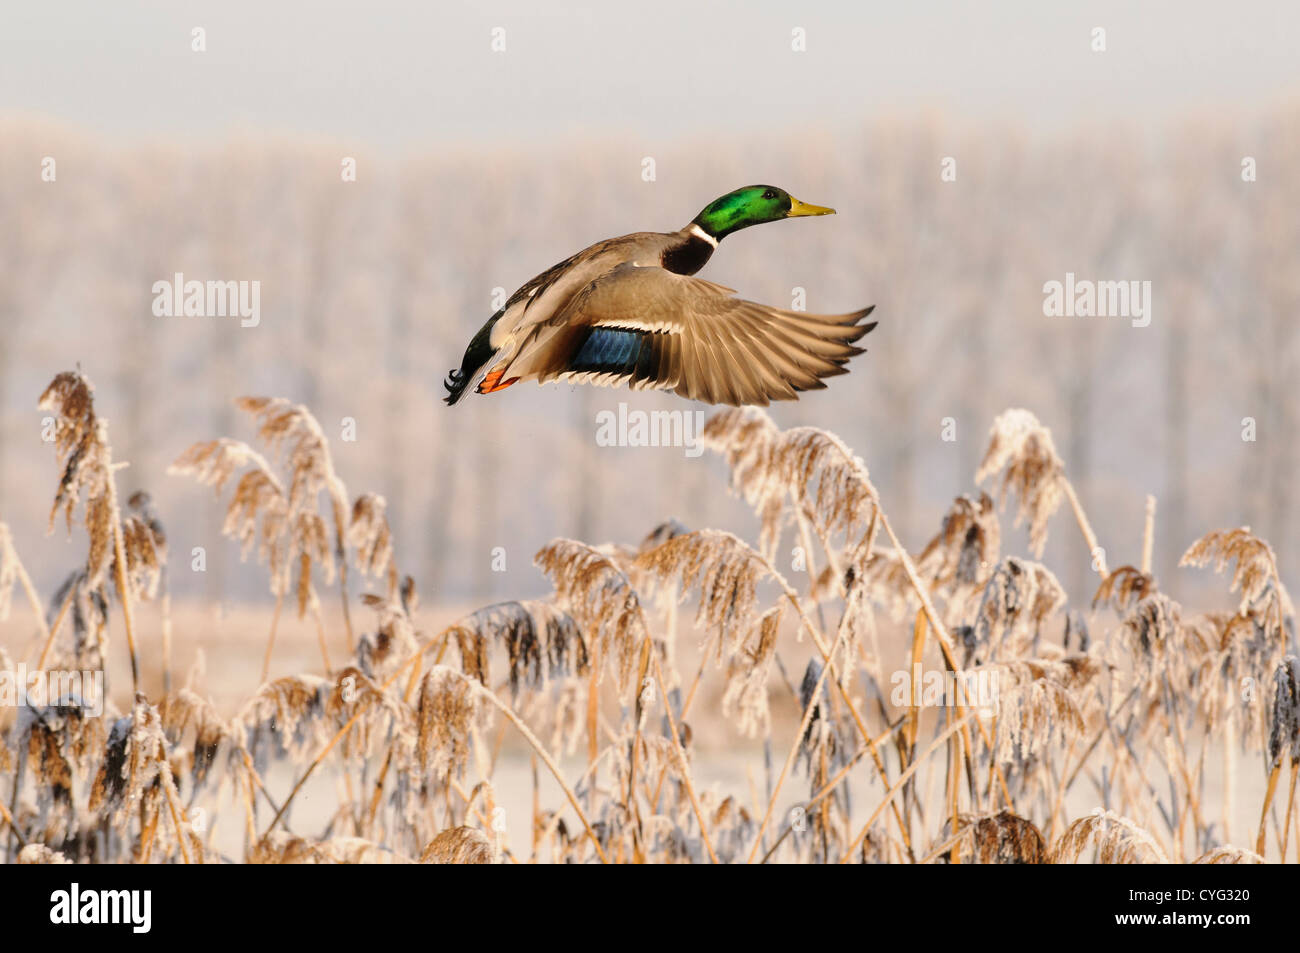 Beautiful mallard duck flying in front of a frosted reed bed - Stock Image